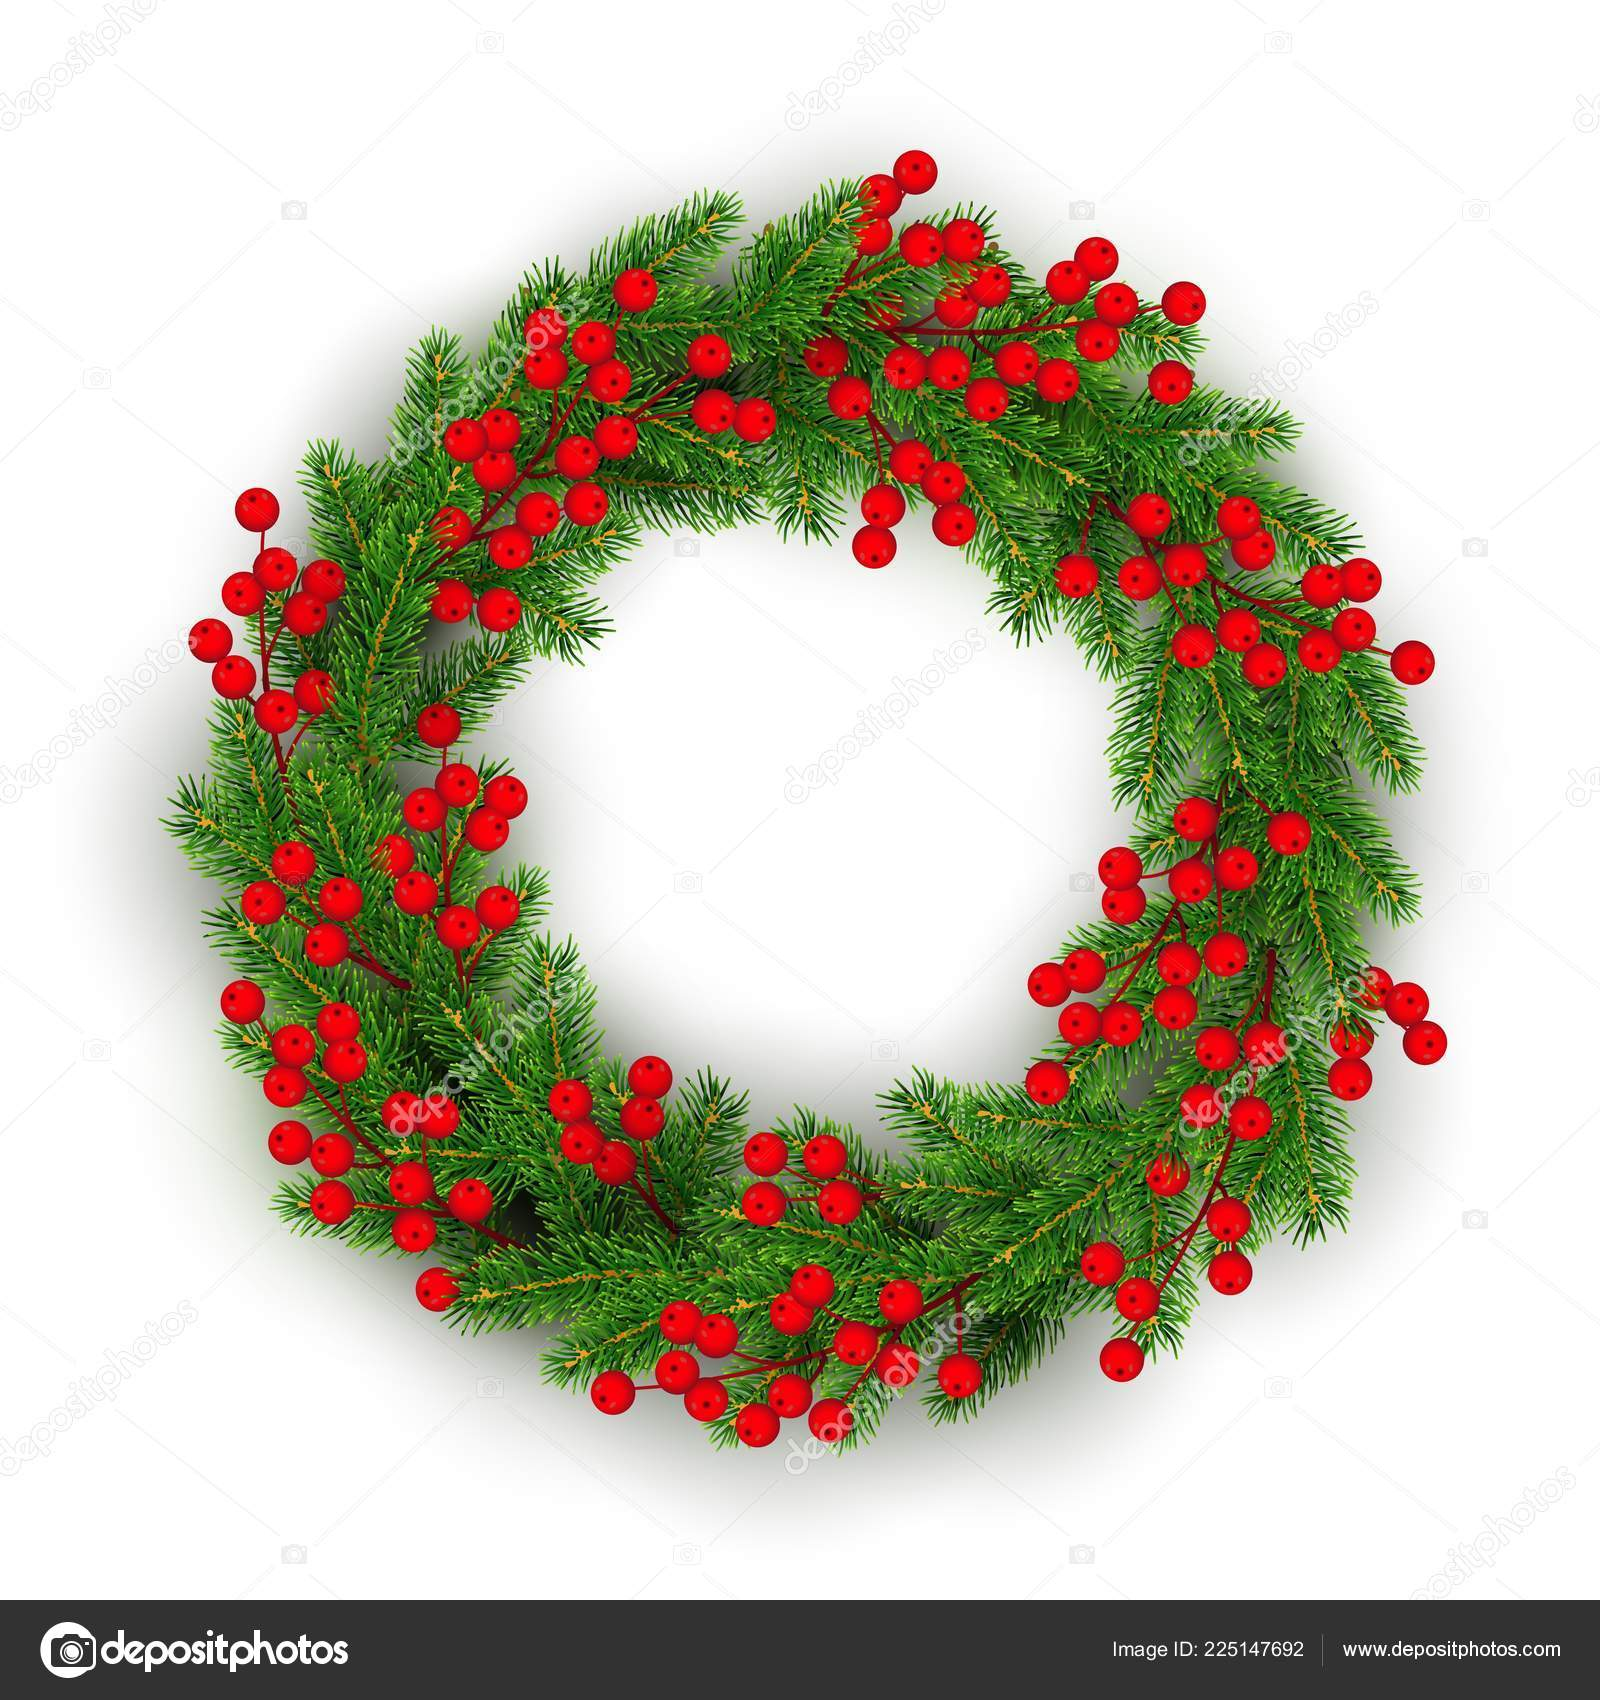 Christmas Wreath Realistic Christmas Tree Branches Holly Berries